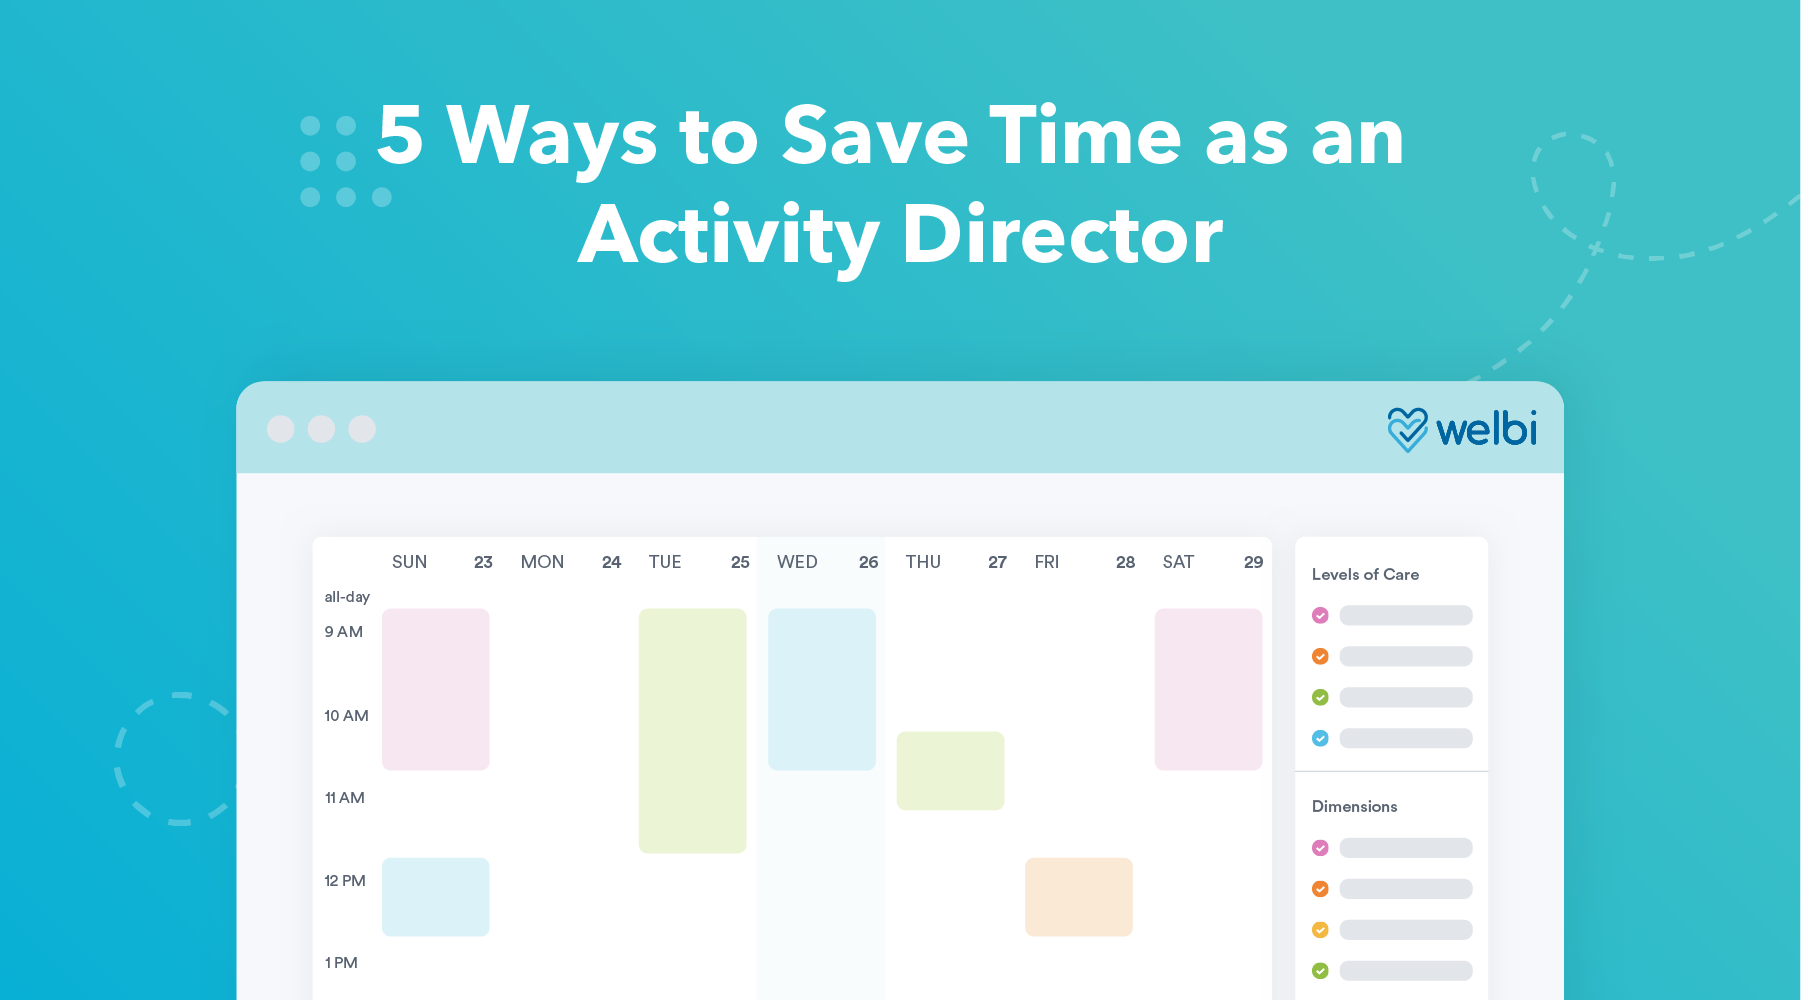 5 Ways to Save Time as an Activity Director